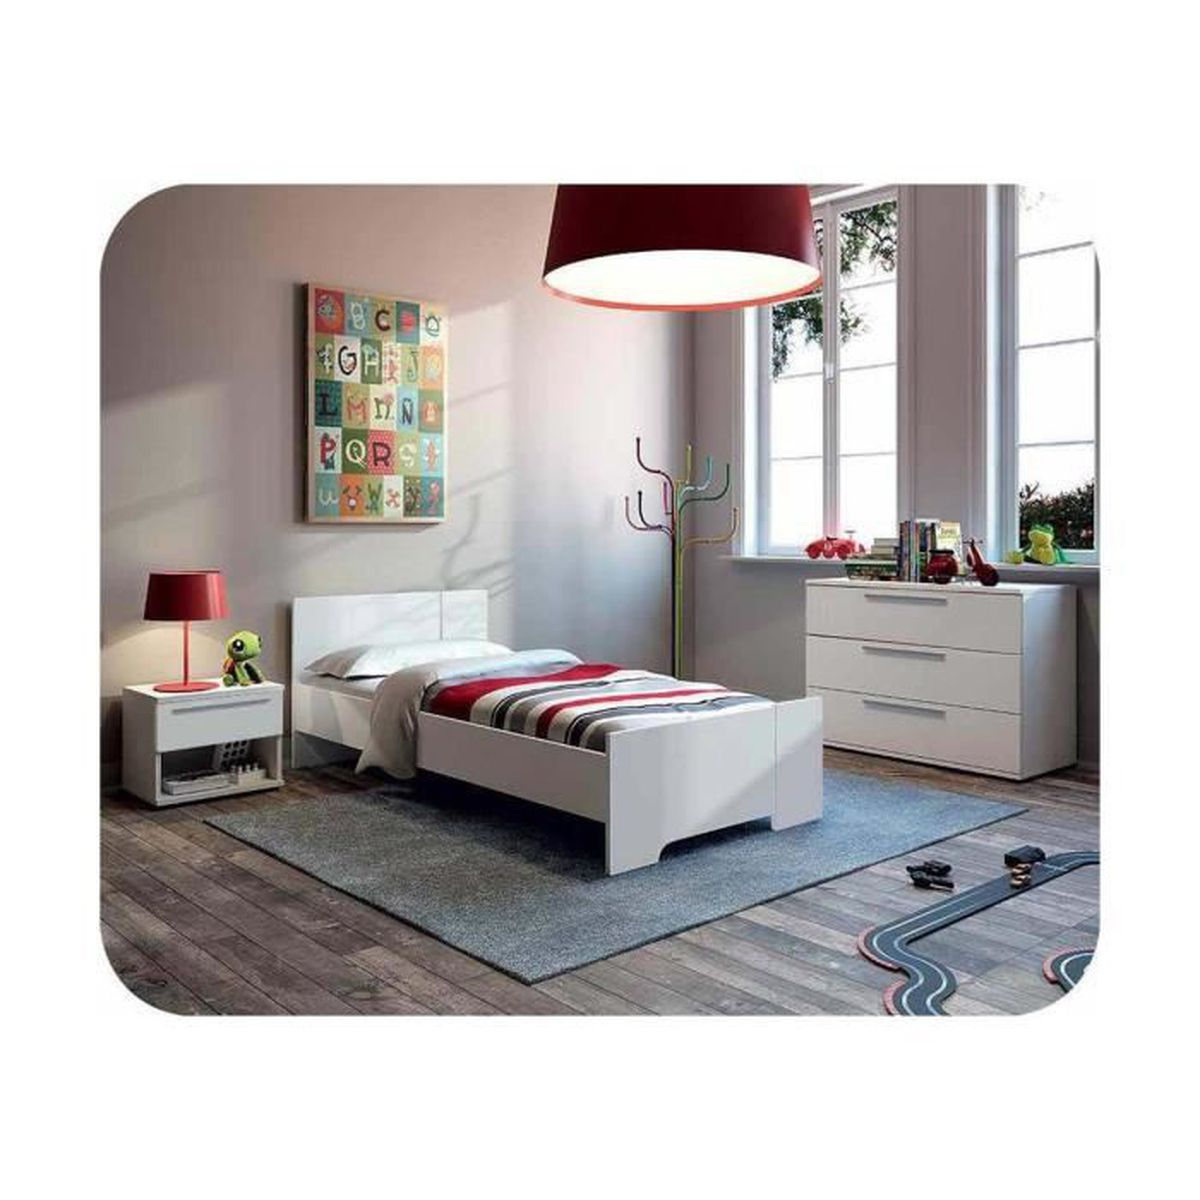 cdiscount chambre enfant maison design. Black Bedroom Furniture Sets. Home Design Ideas